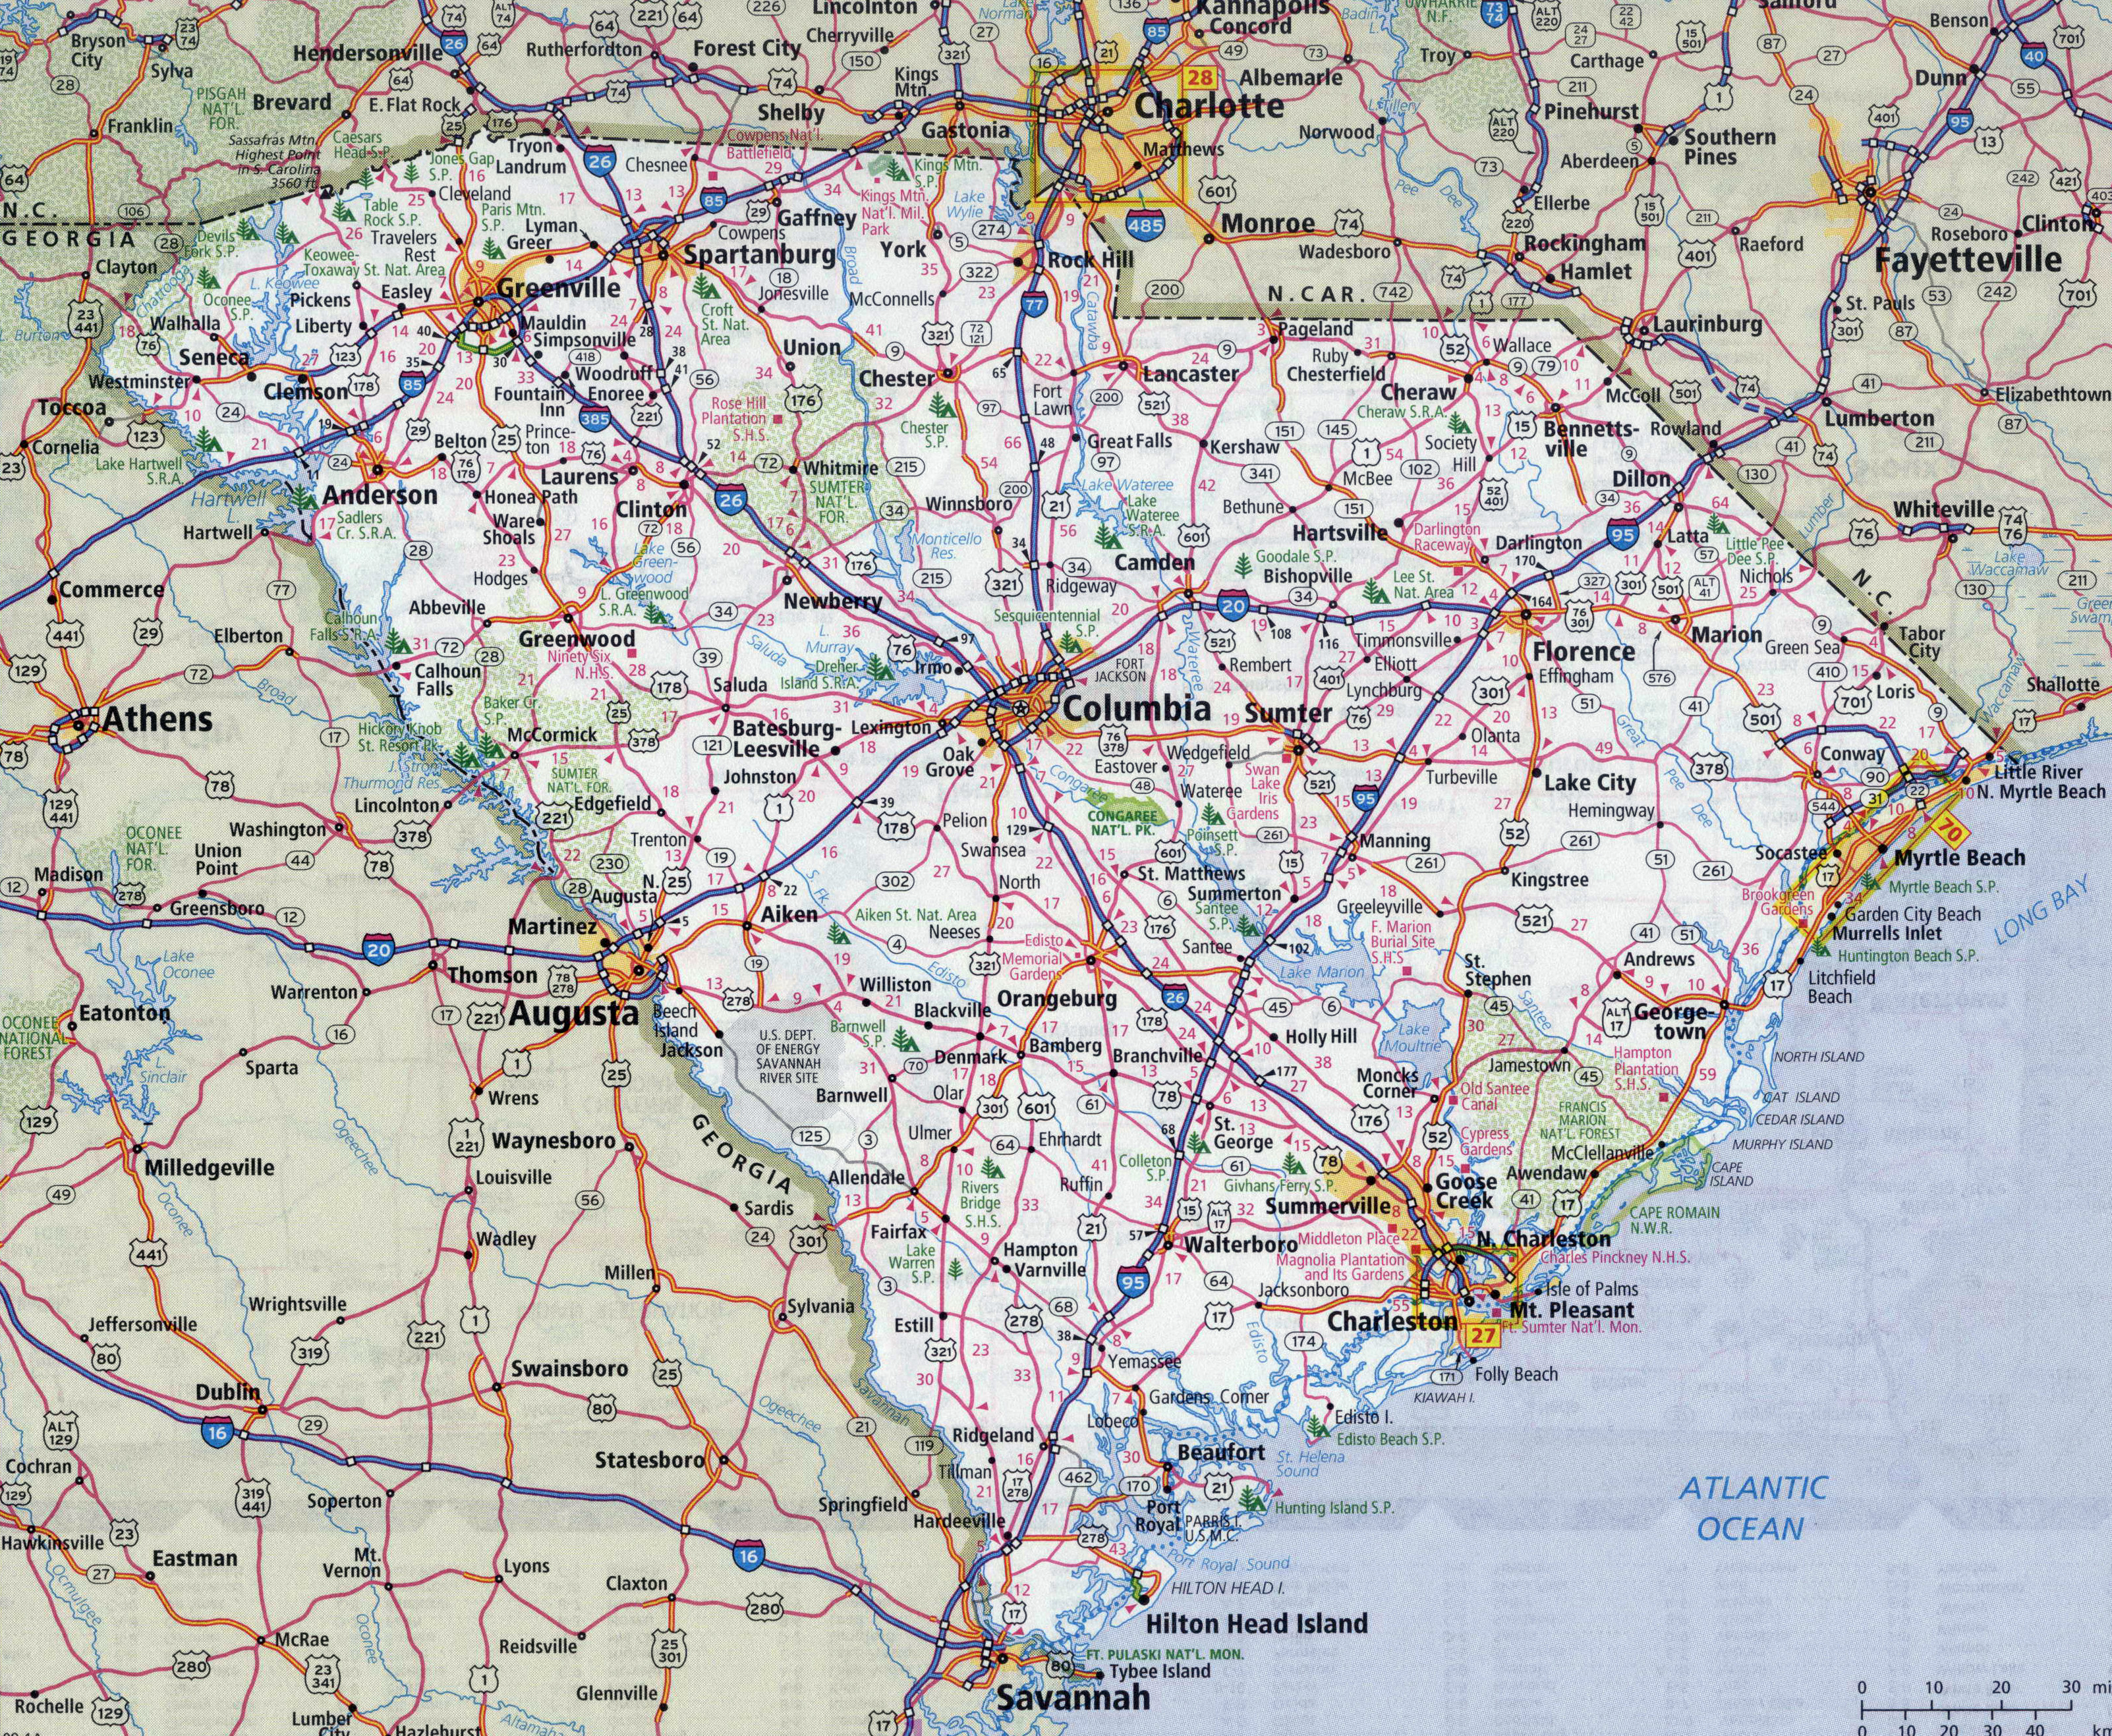 Picture of: Large Detailed Roads And Highways Map Of South Carolina State With All Cities South Carolina State Usa Maps Of The Usa Maps Collection Of The United States Of America